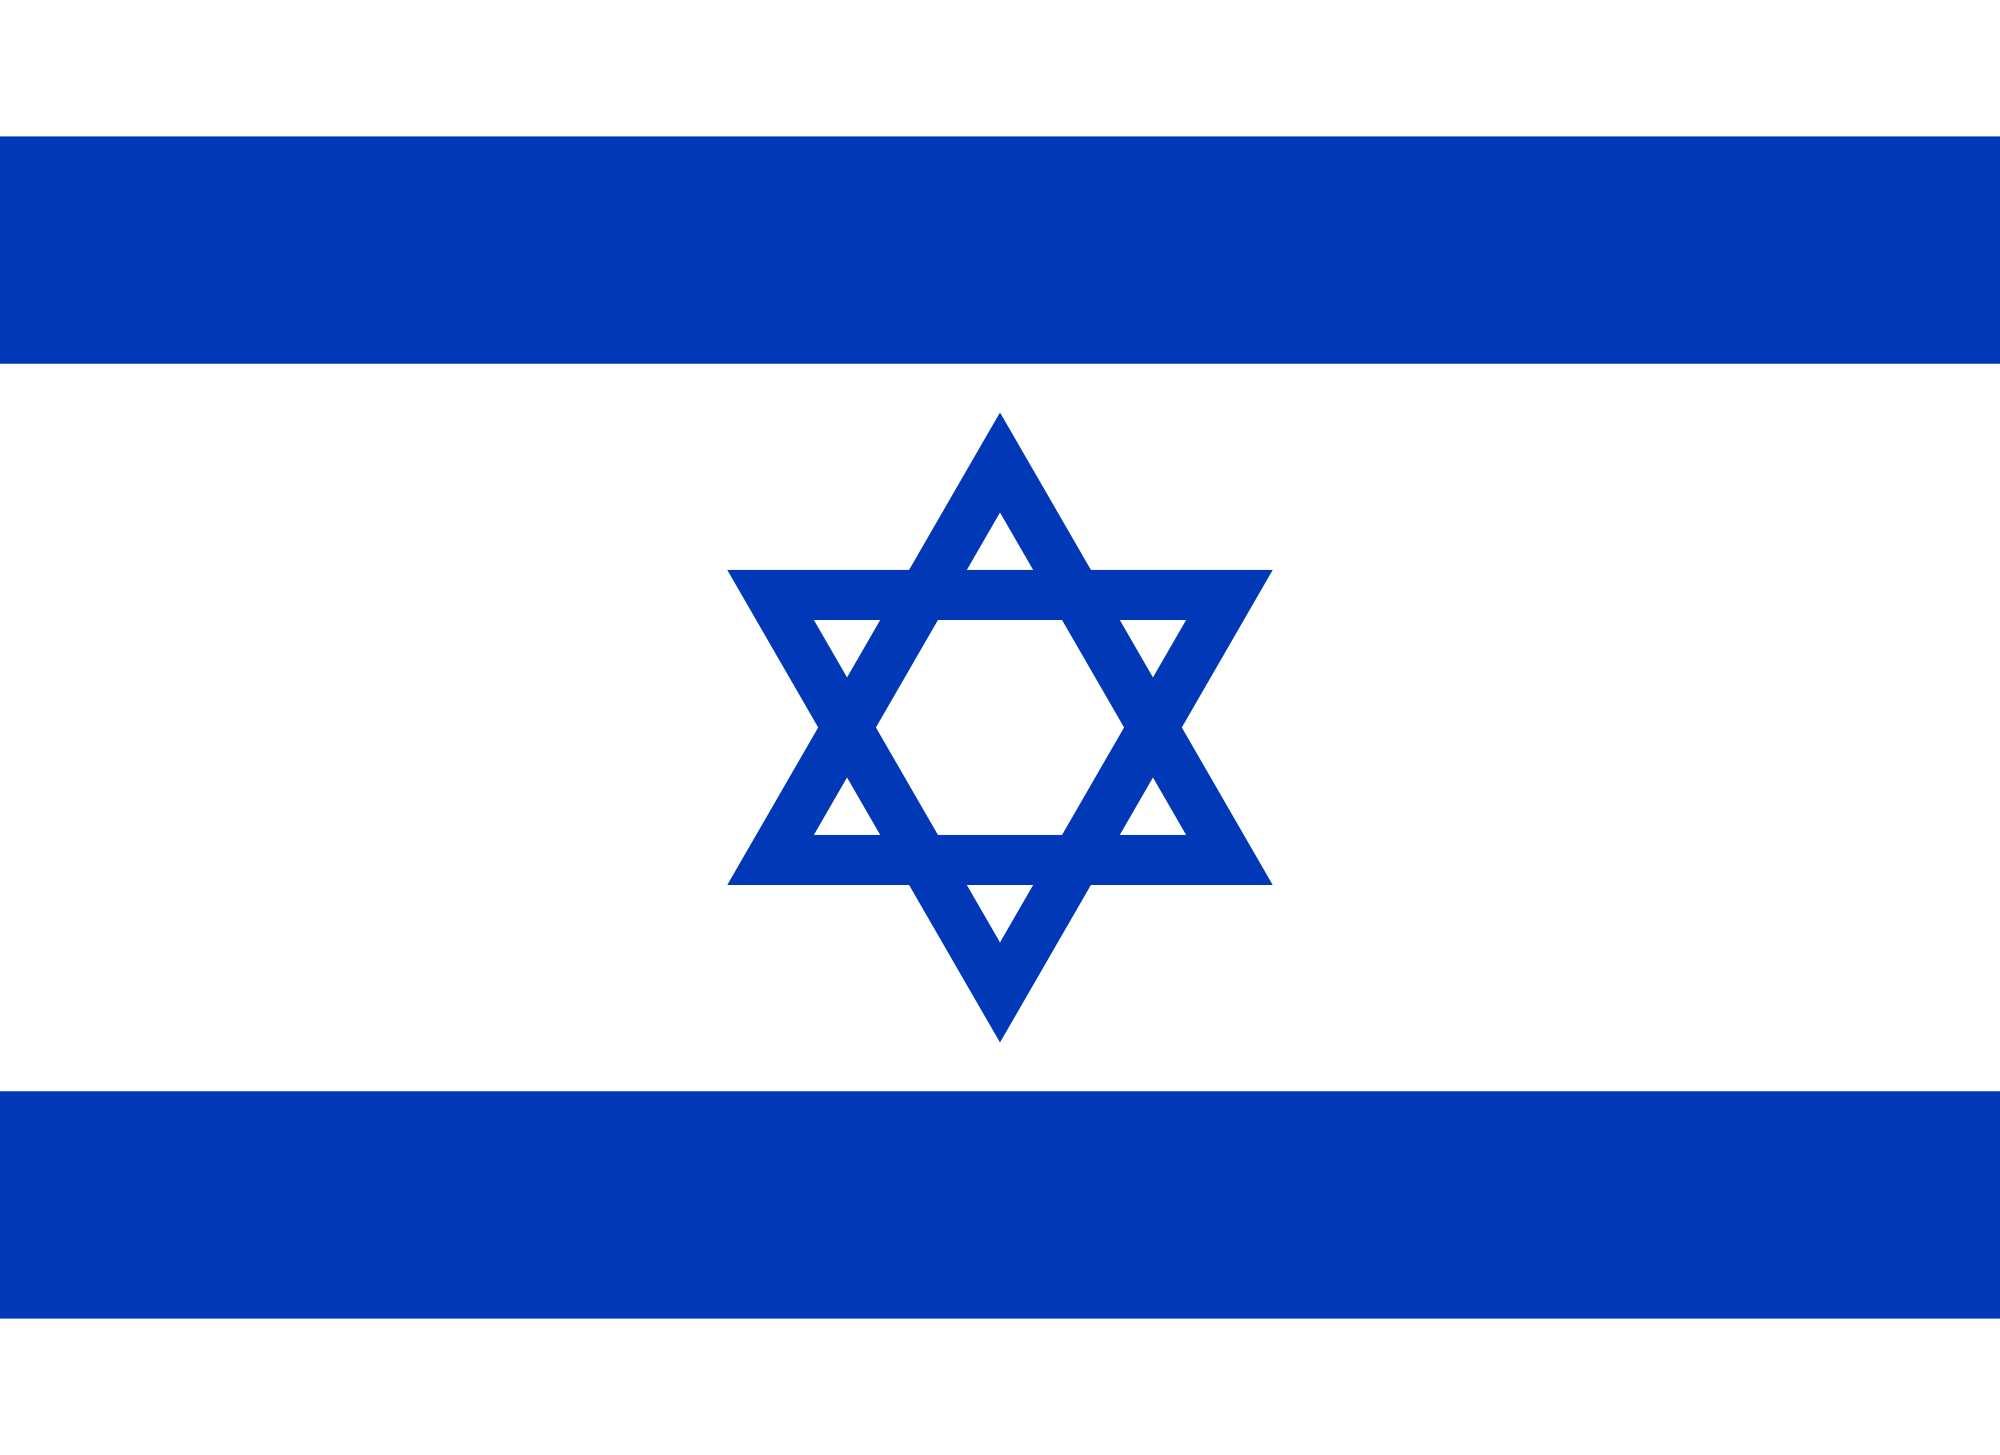 This flag uses the most recognized symbol of Jewish identity and wider community -- the Star of David. Still, t he earliest Jewish usage of the symbol was inherited from medieval Arabic literature and Kabbalists who used the symbol   for talismanic properties in amulets   (   segulot   ) where it was known as the Seal of Solomon.